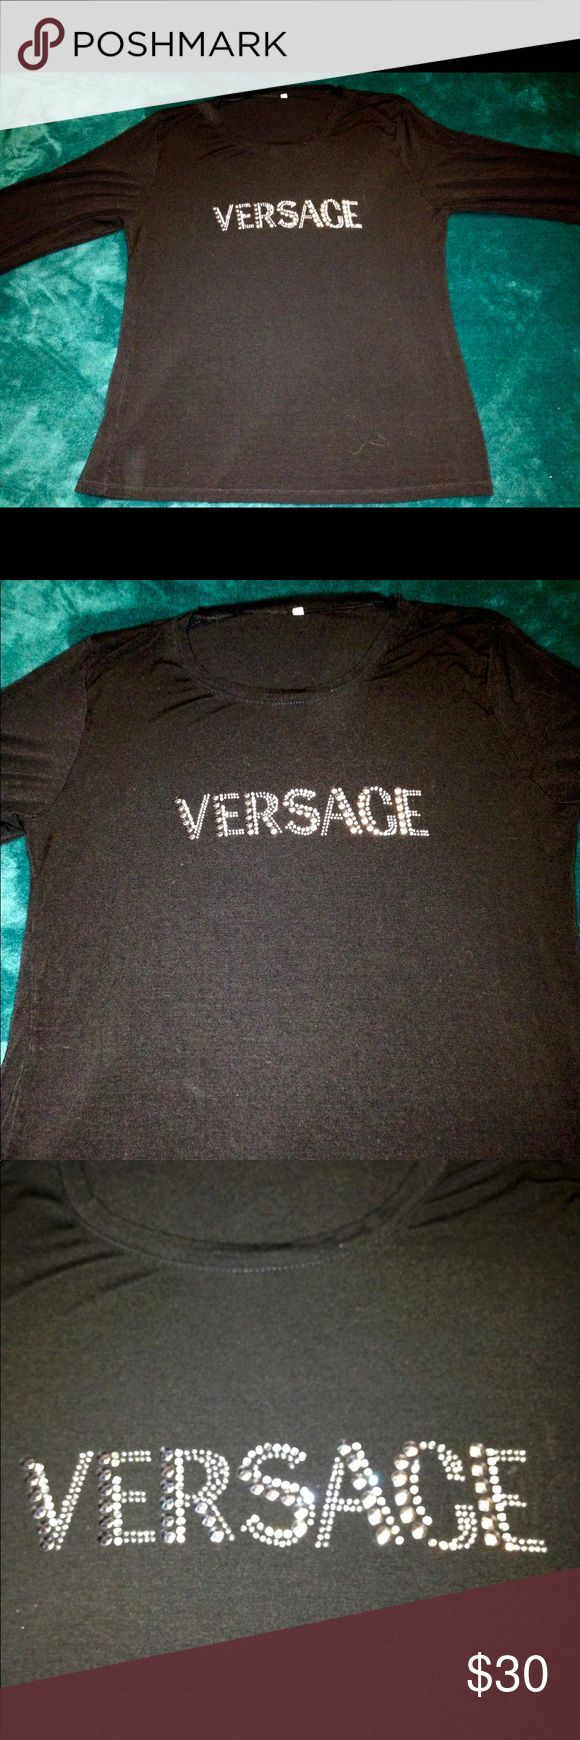 "Ladies Versace 3/4 length Shirt Bling Sz 4 M Ladies Versace 3/4 length Shirt Bling Sz 4 M in great preowned condition. Stretchy fabric in black with bling spellout- Versace. Size 4 or ladies medium. Armpit to armpit 18"" Versace Tops"